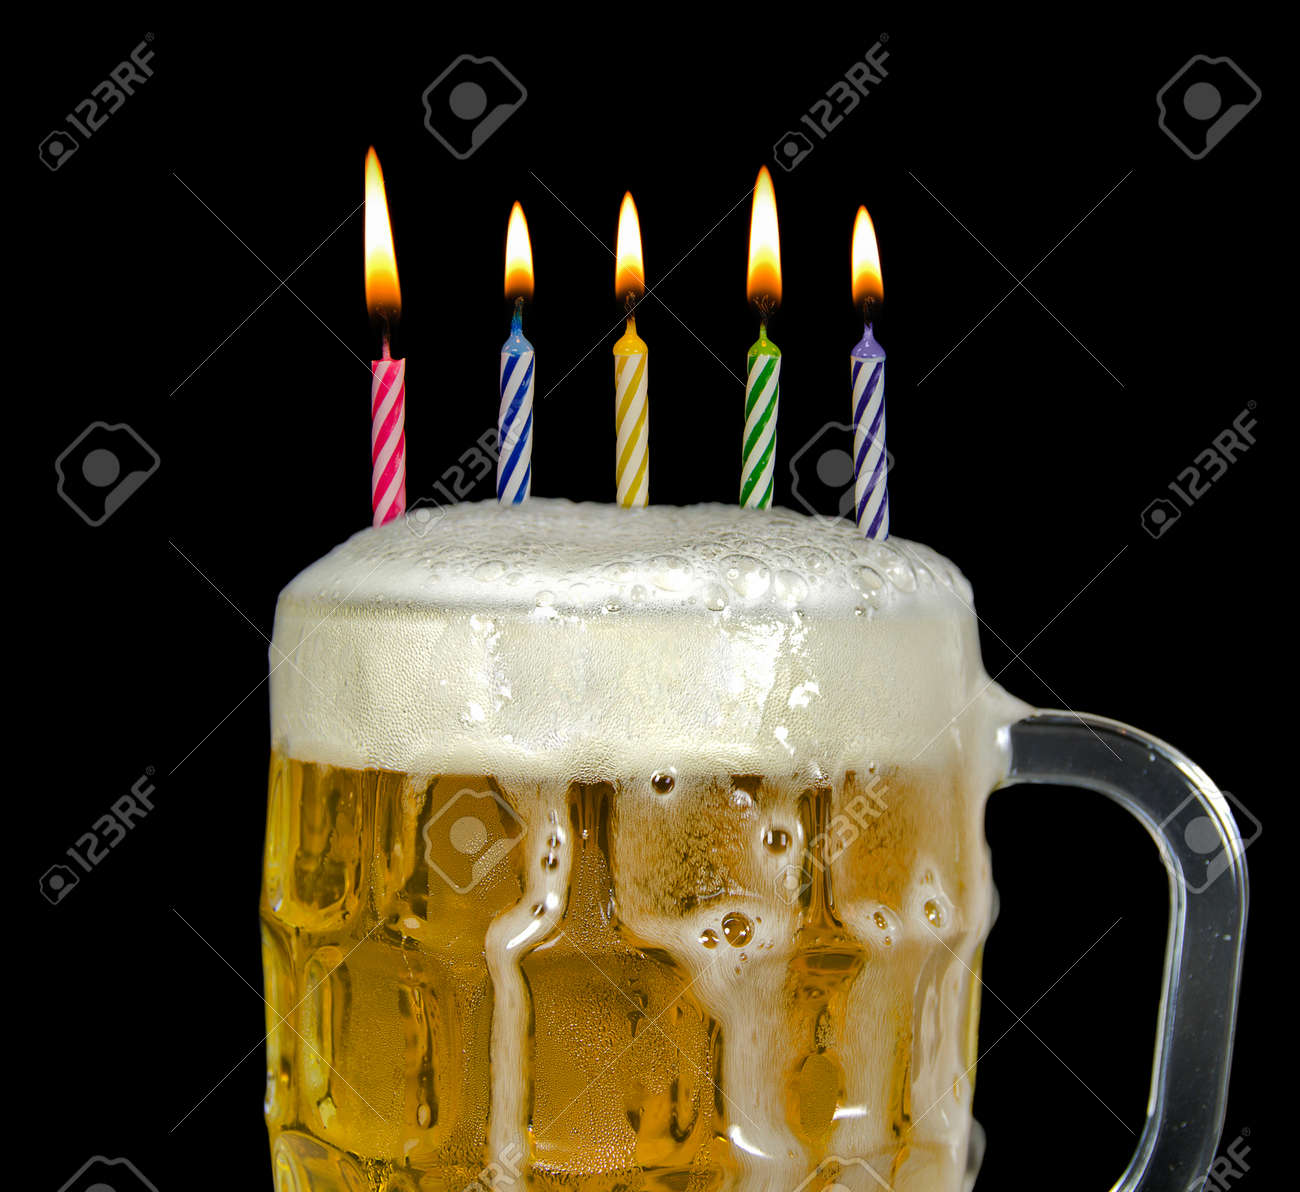 Unique Birthday Candles Images Stock Pictures Royalty Free